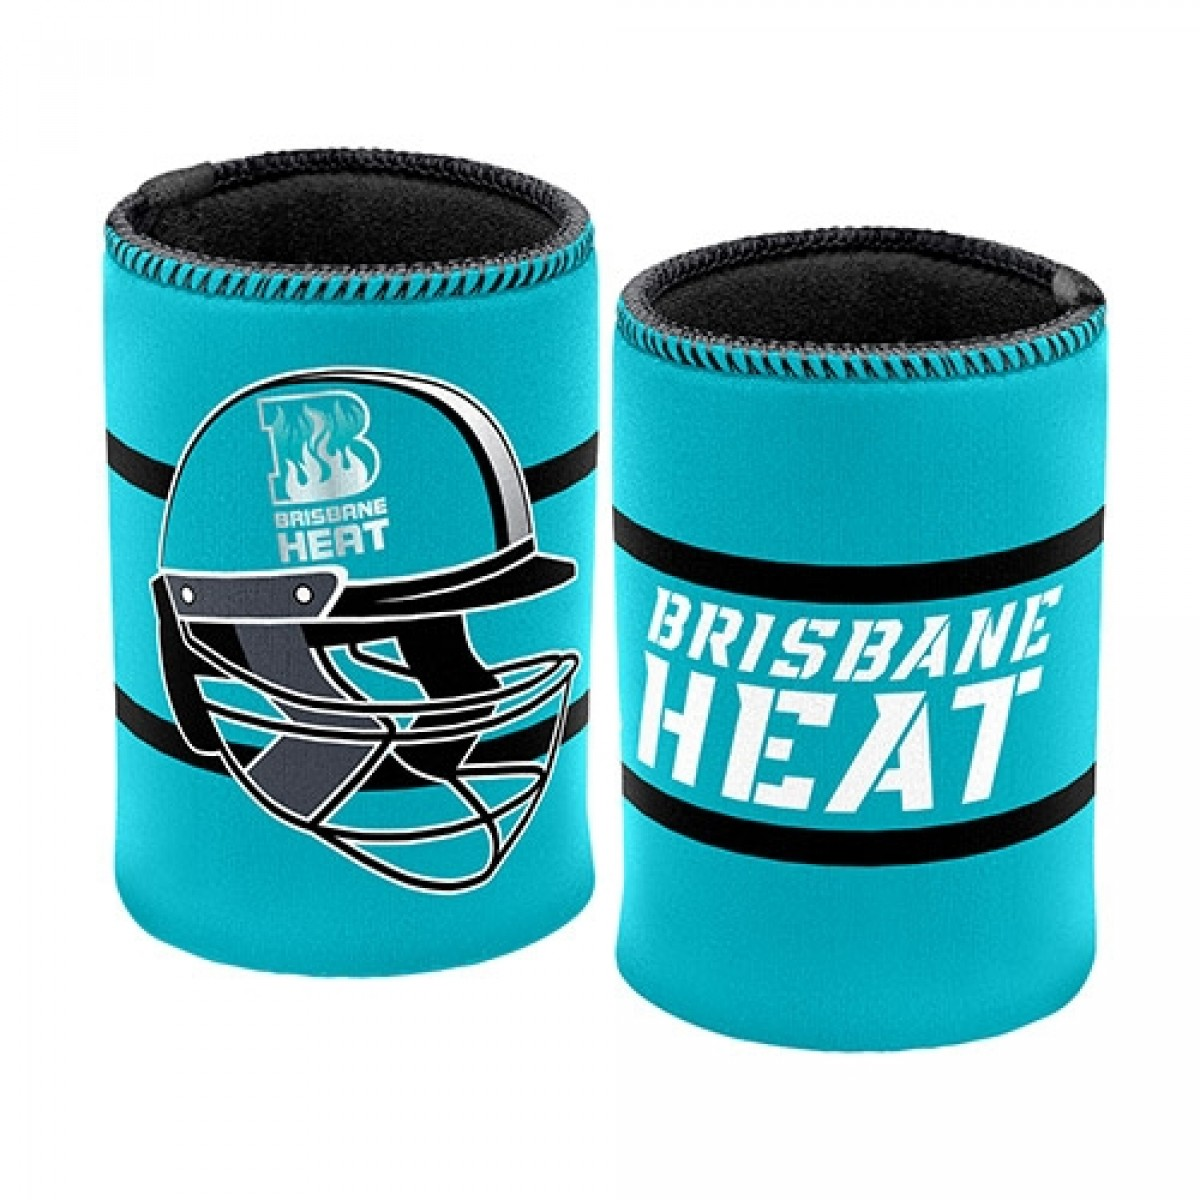 Charming BRISBANE HEAT STUBBY HOLDER